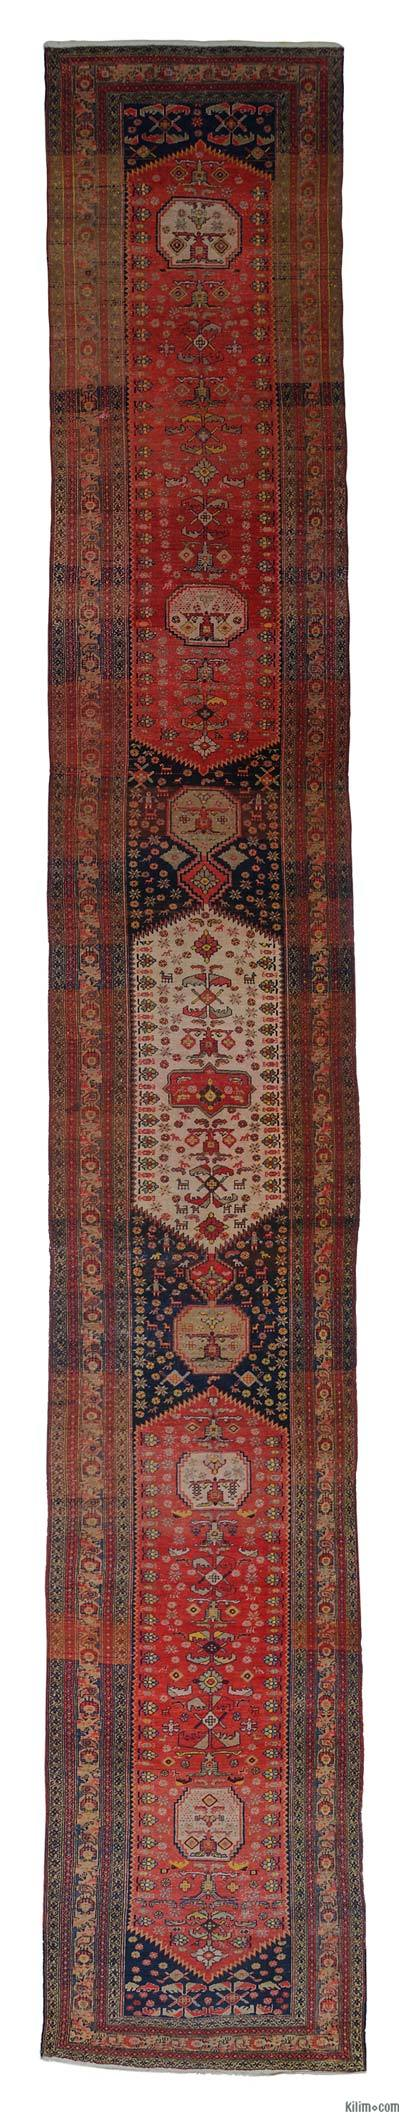 "Multicolor Antique Anatolian Runner Rug - 4'  x 25' 7"" (48 in. x 307 in.)"